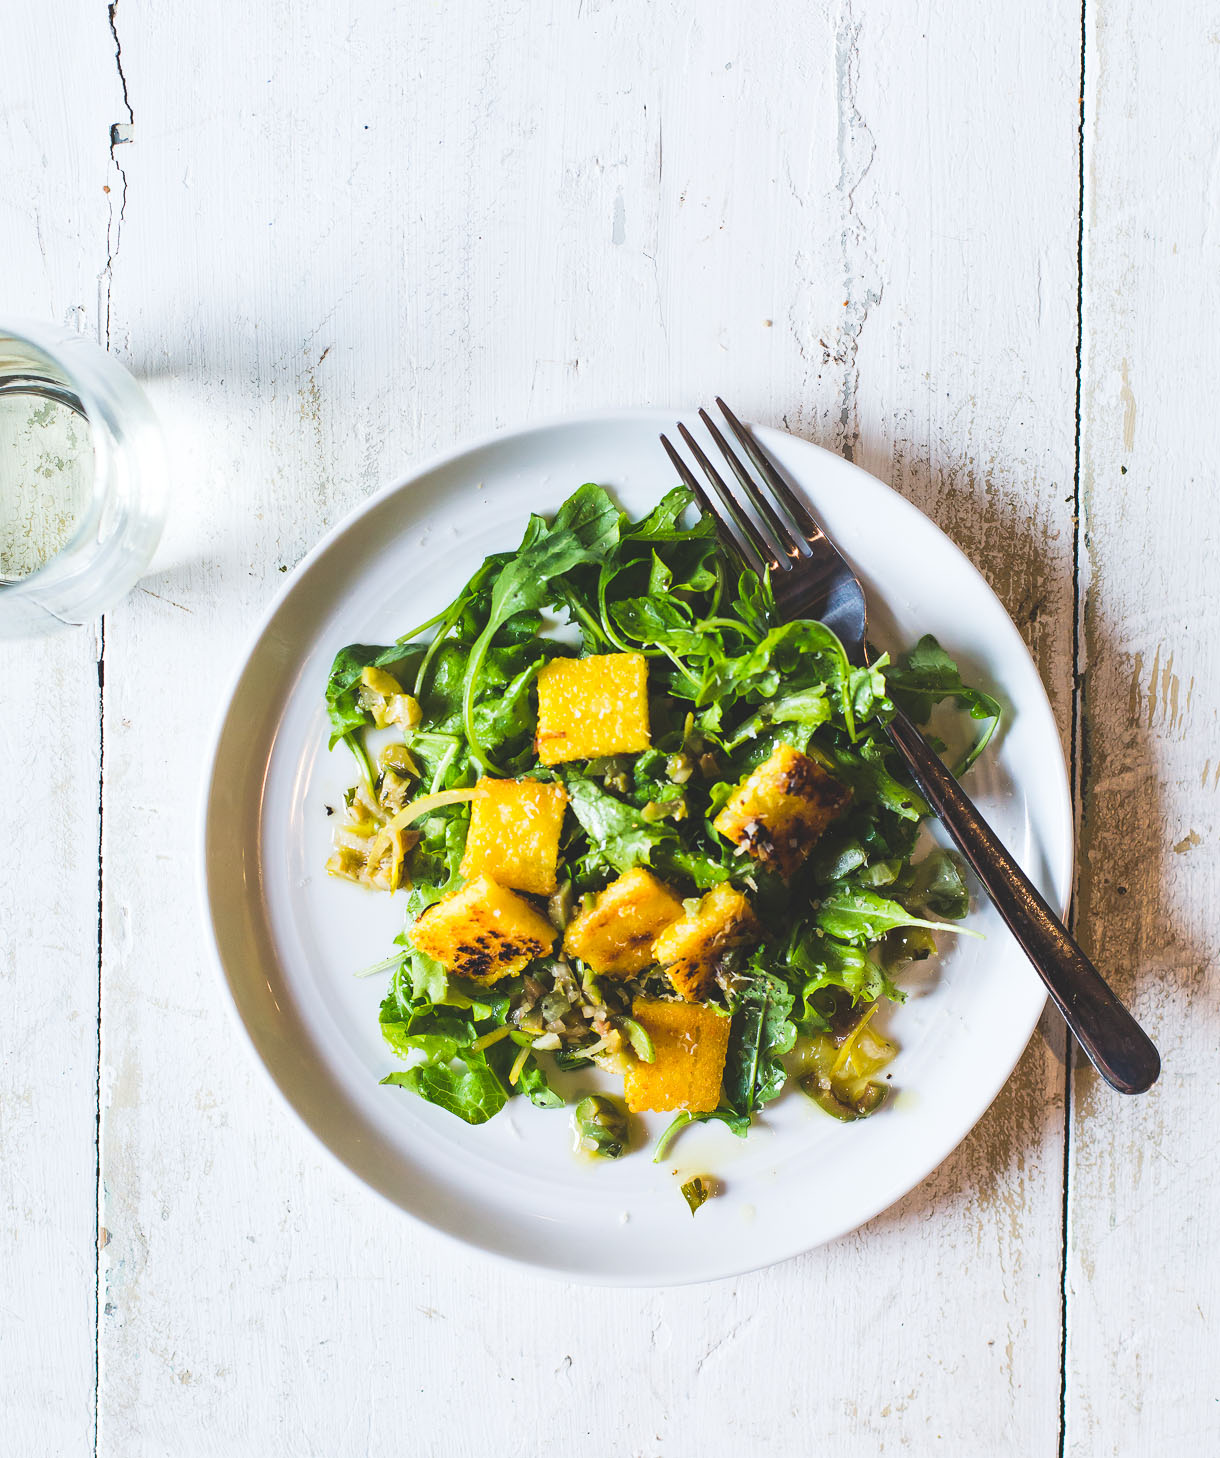 Fried Polenta Squares with Mixed Greens + Lemon Olive Salsa